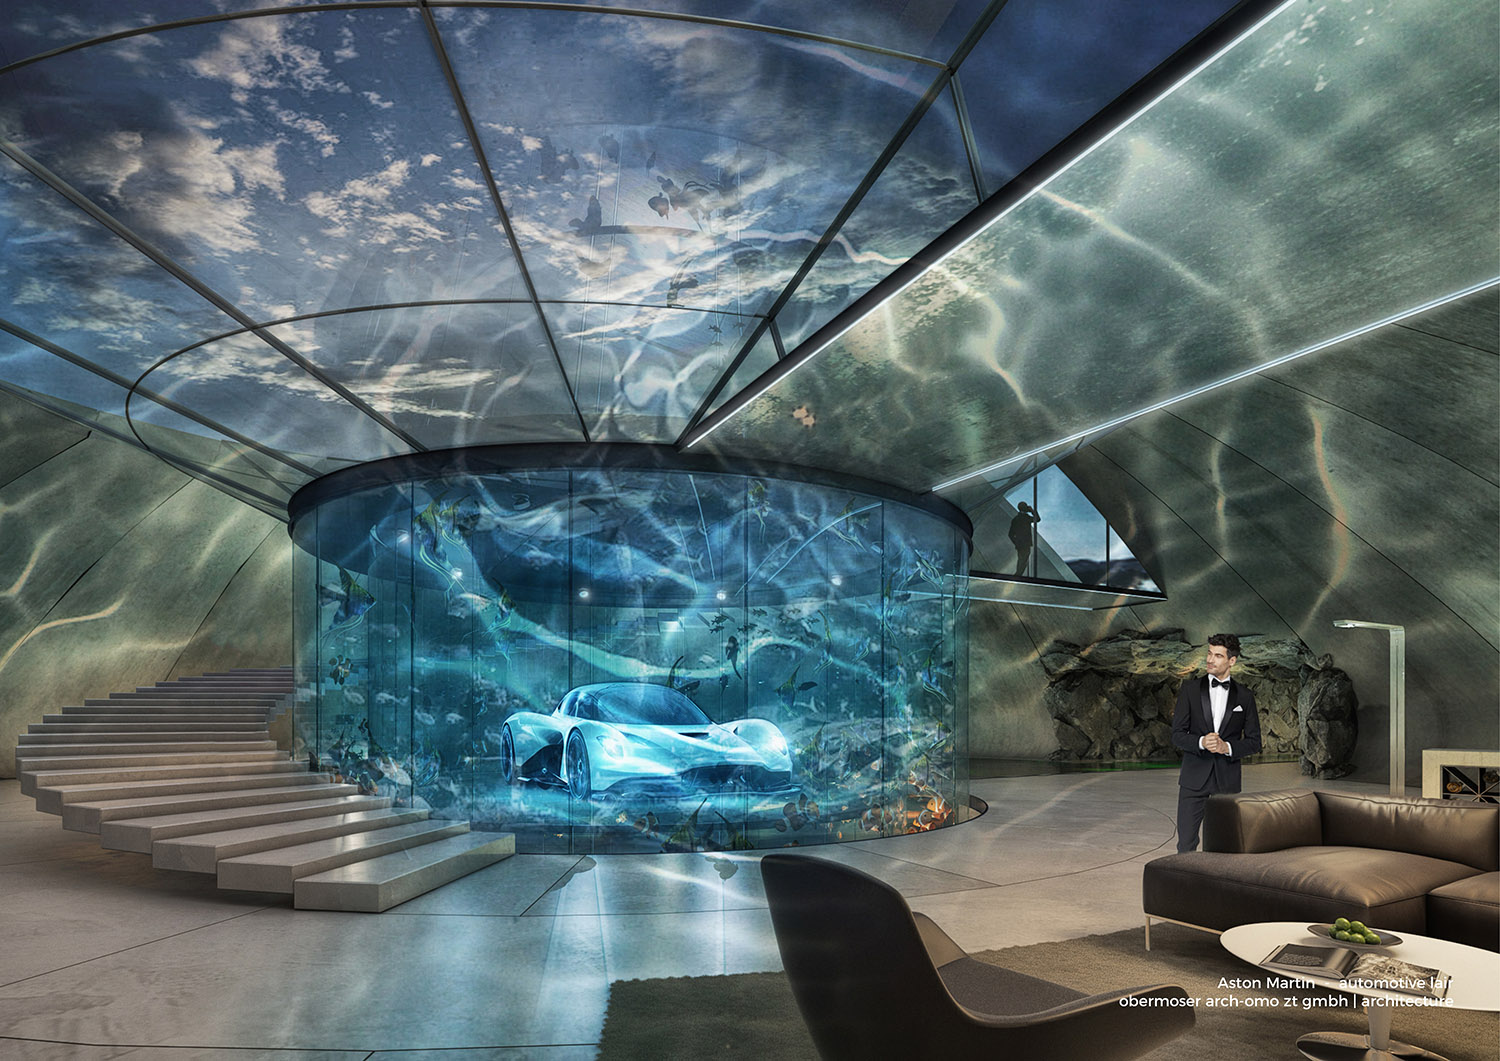 Rendering of an Aston Martin inside of a circular aquarium